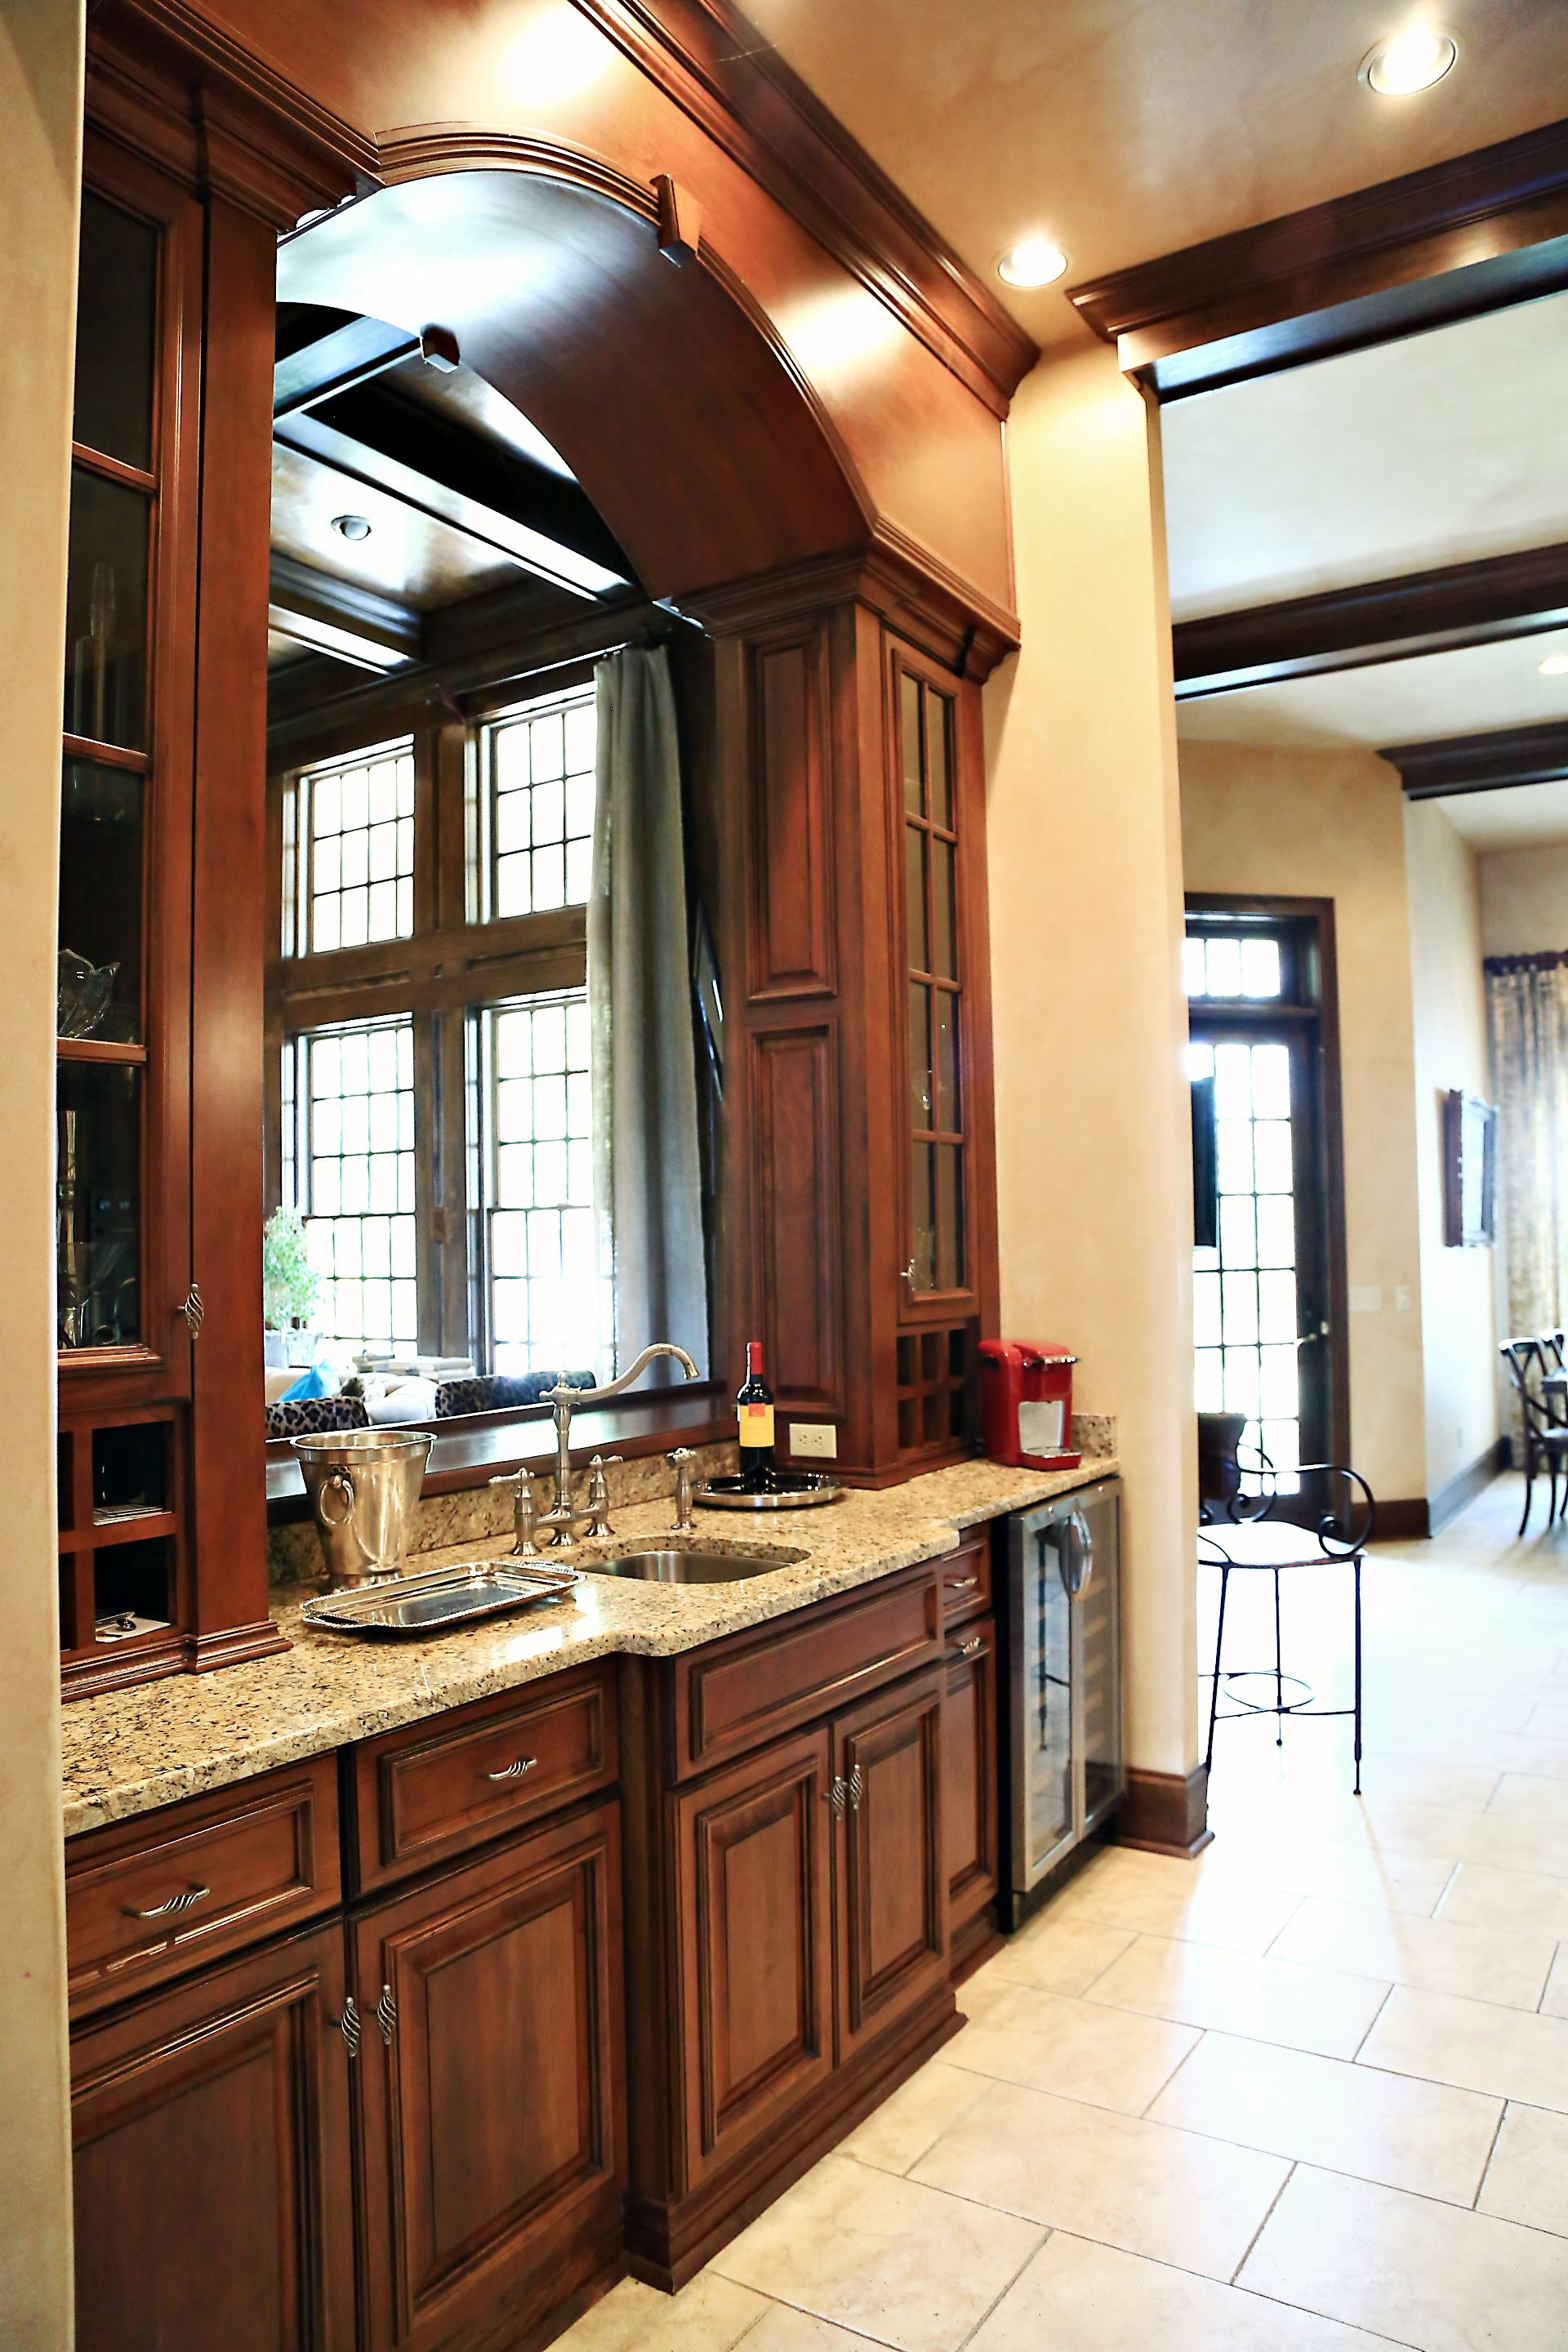 gallery kitchen cabinetry from Louisville Kitchen Cabinets